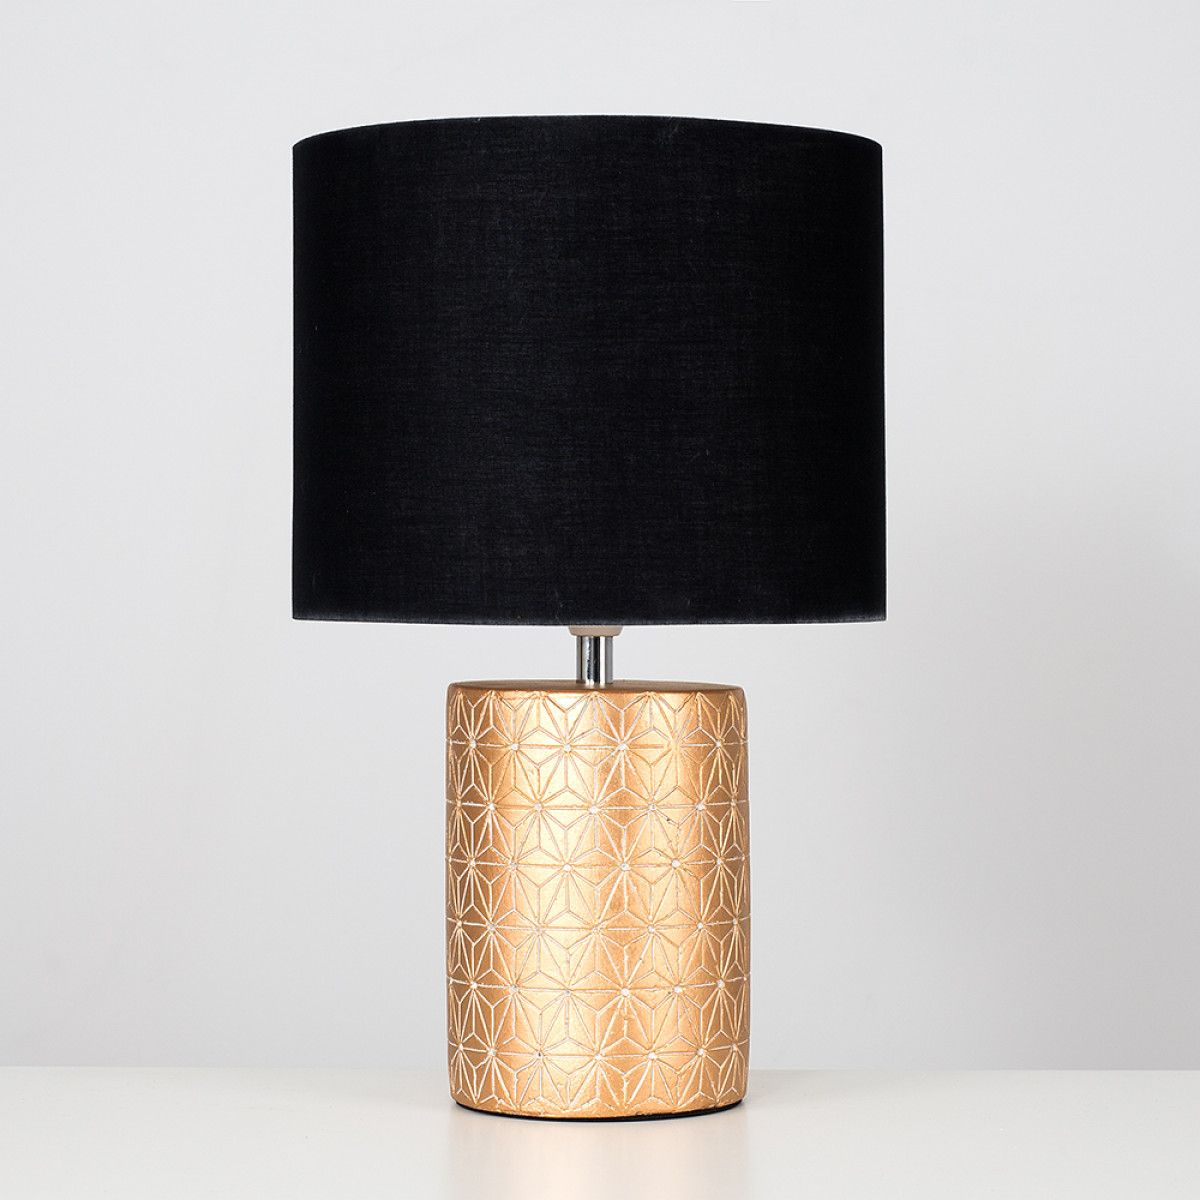 Constellation Gold Ceramic Table Lamp With Black Shade